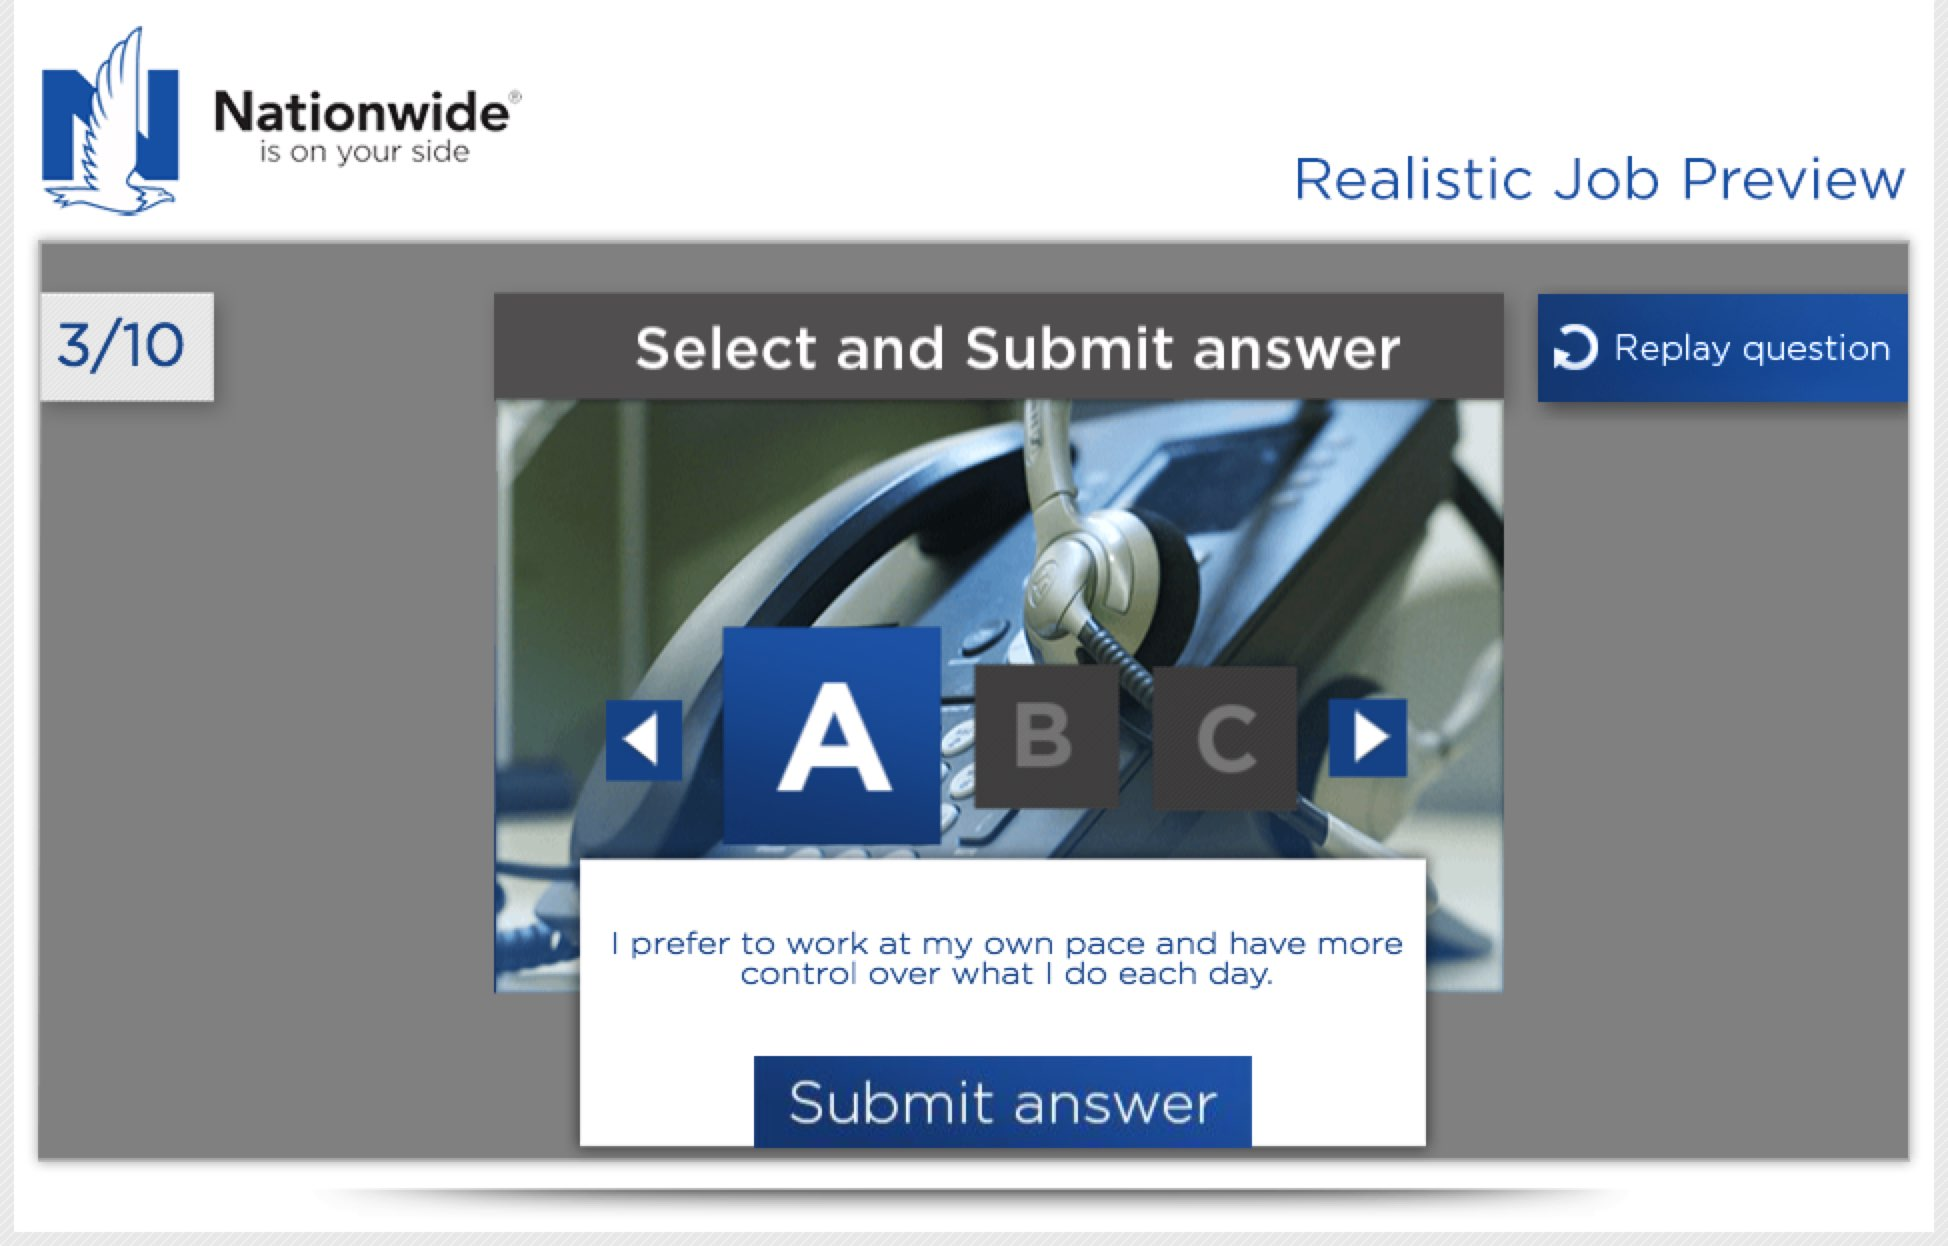 Realistic Job Preview Example by Nationwide Insurance | Ongig Blog